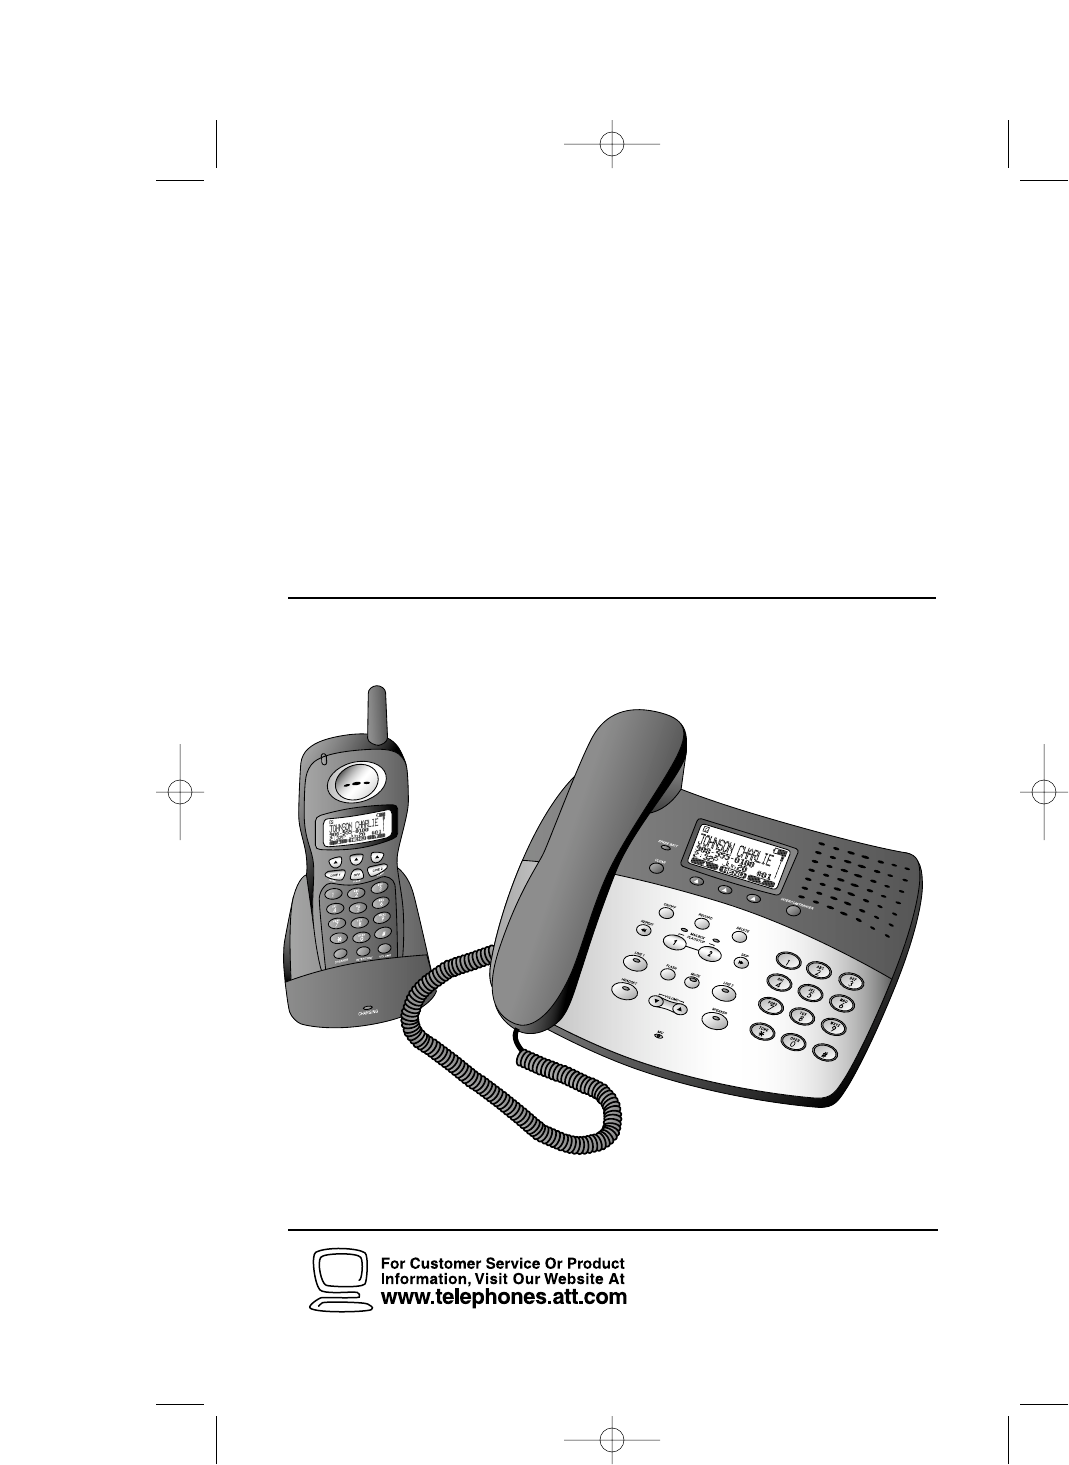 at t answering machine 2462 user guide manualsonline com rh phone manualsonline com at&t phone model 2462 manual at&t phone 2462 manual